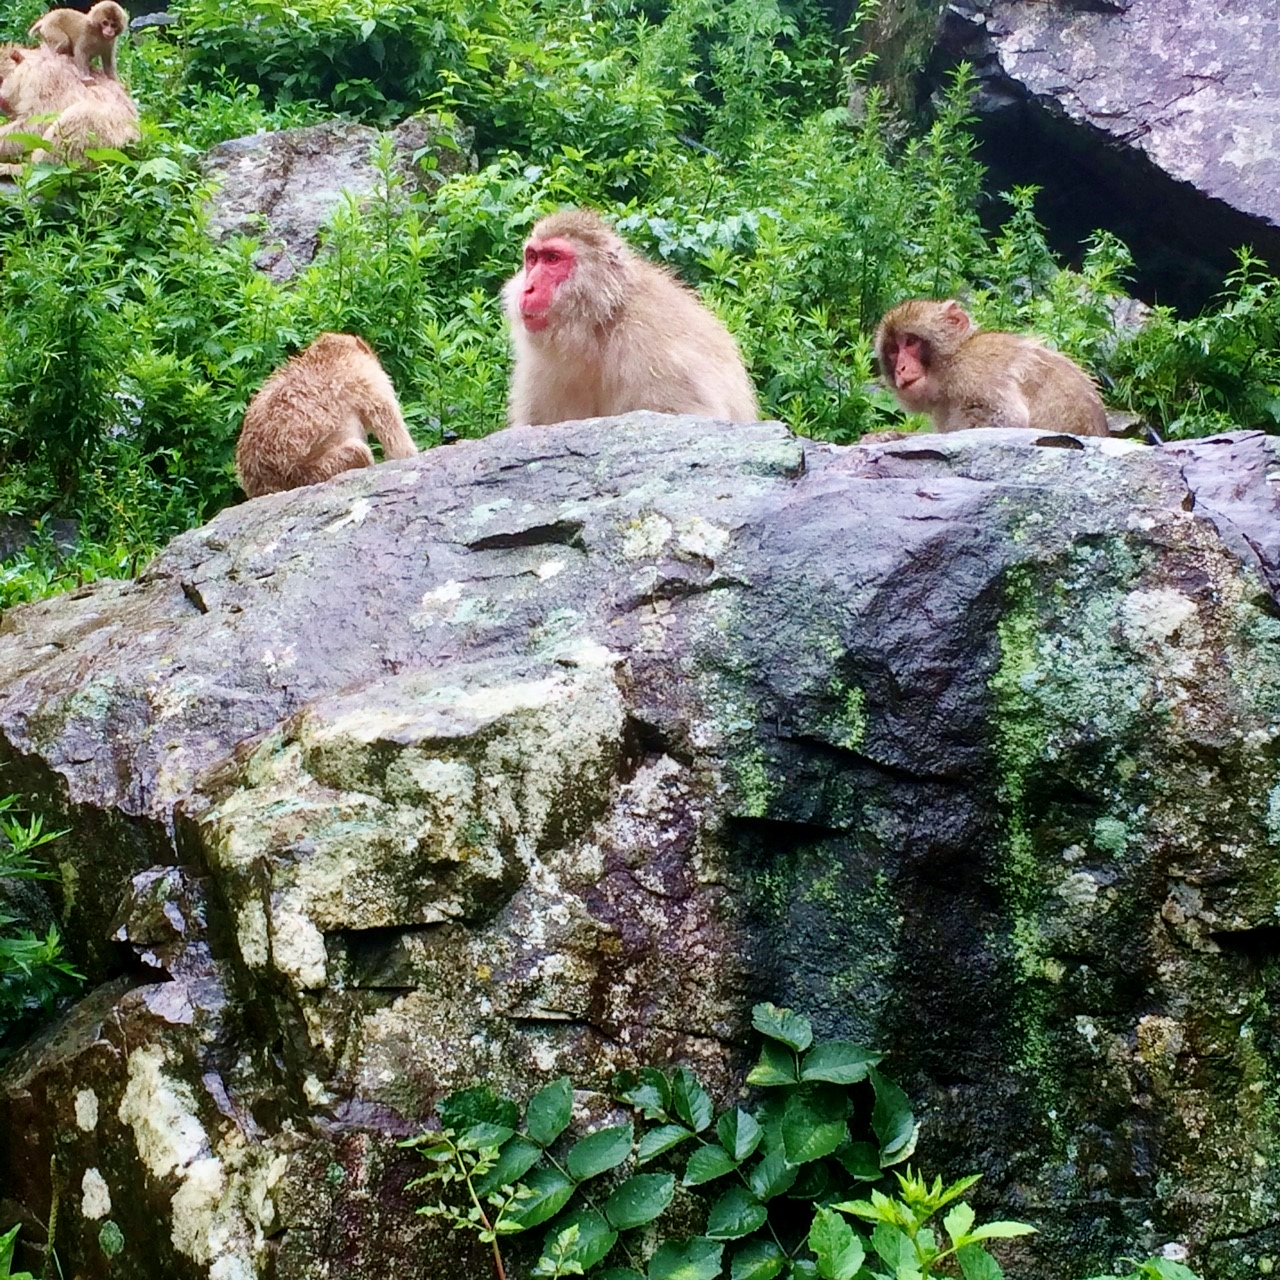 Reasons For The Visiting The Snow Monkey Park In Summer